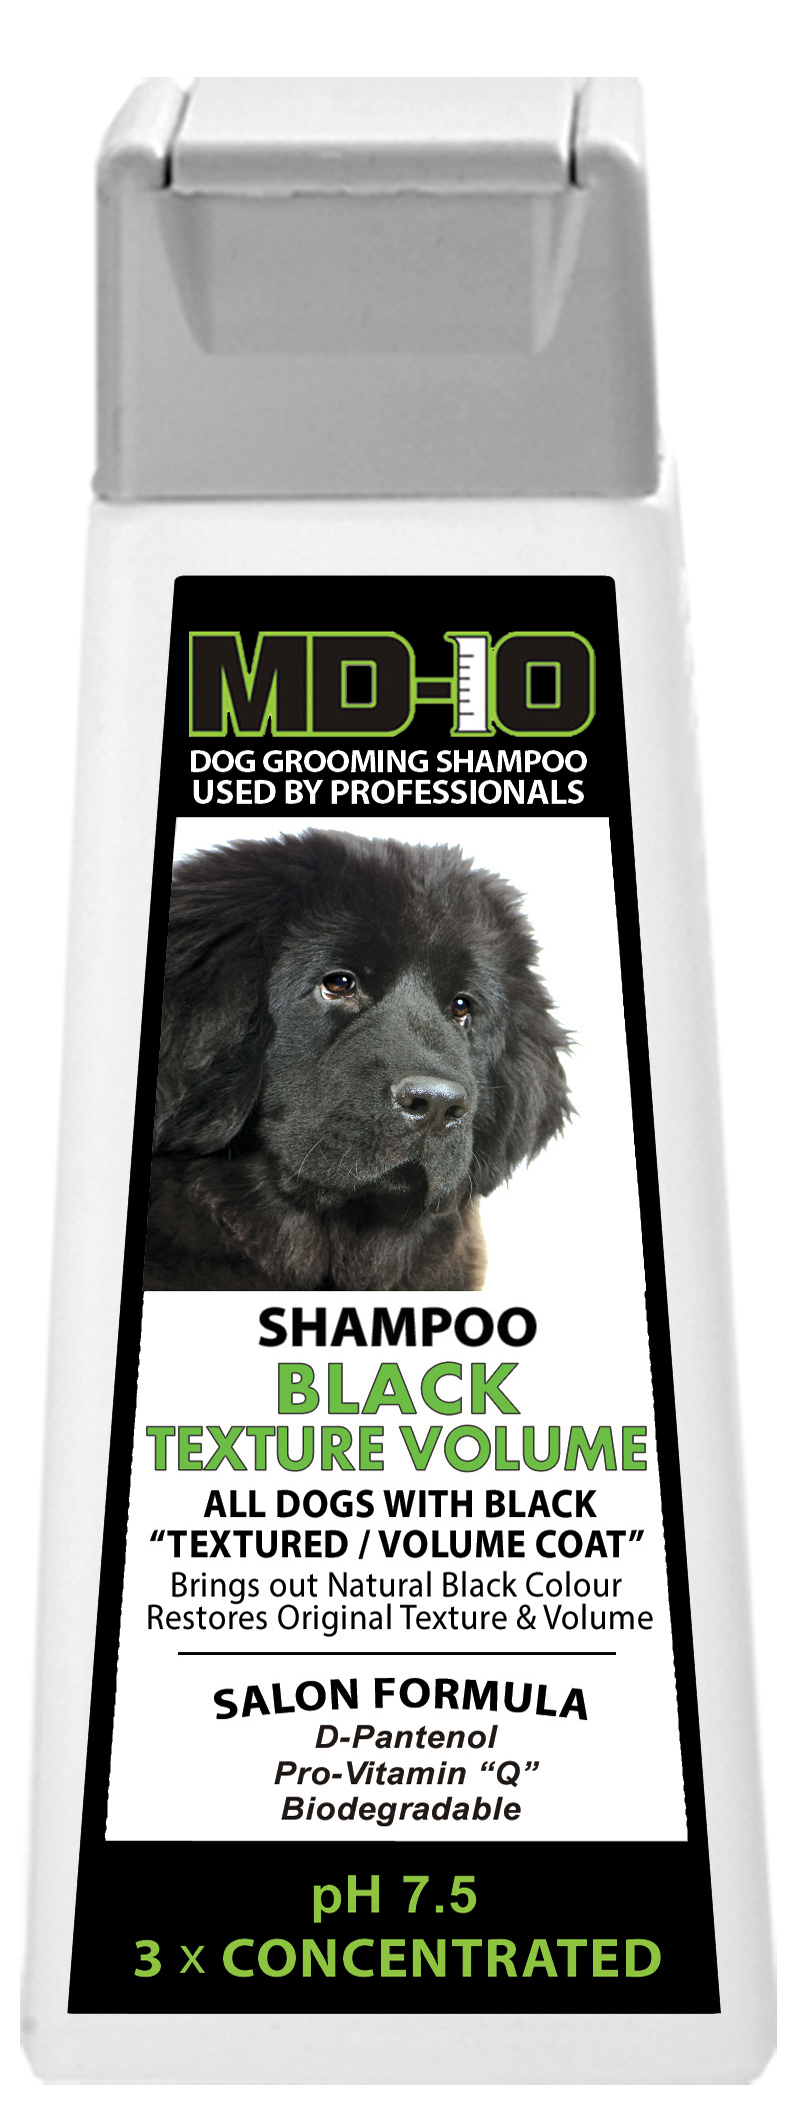 Shampoing MD-10 Black Texture